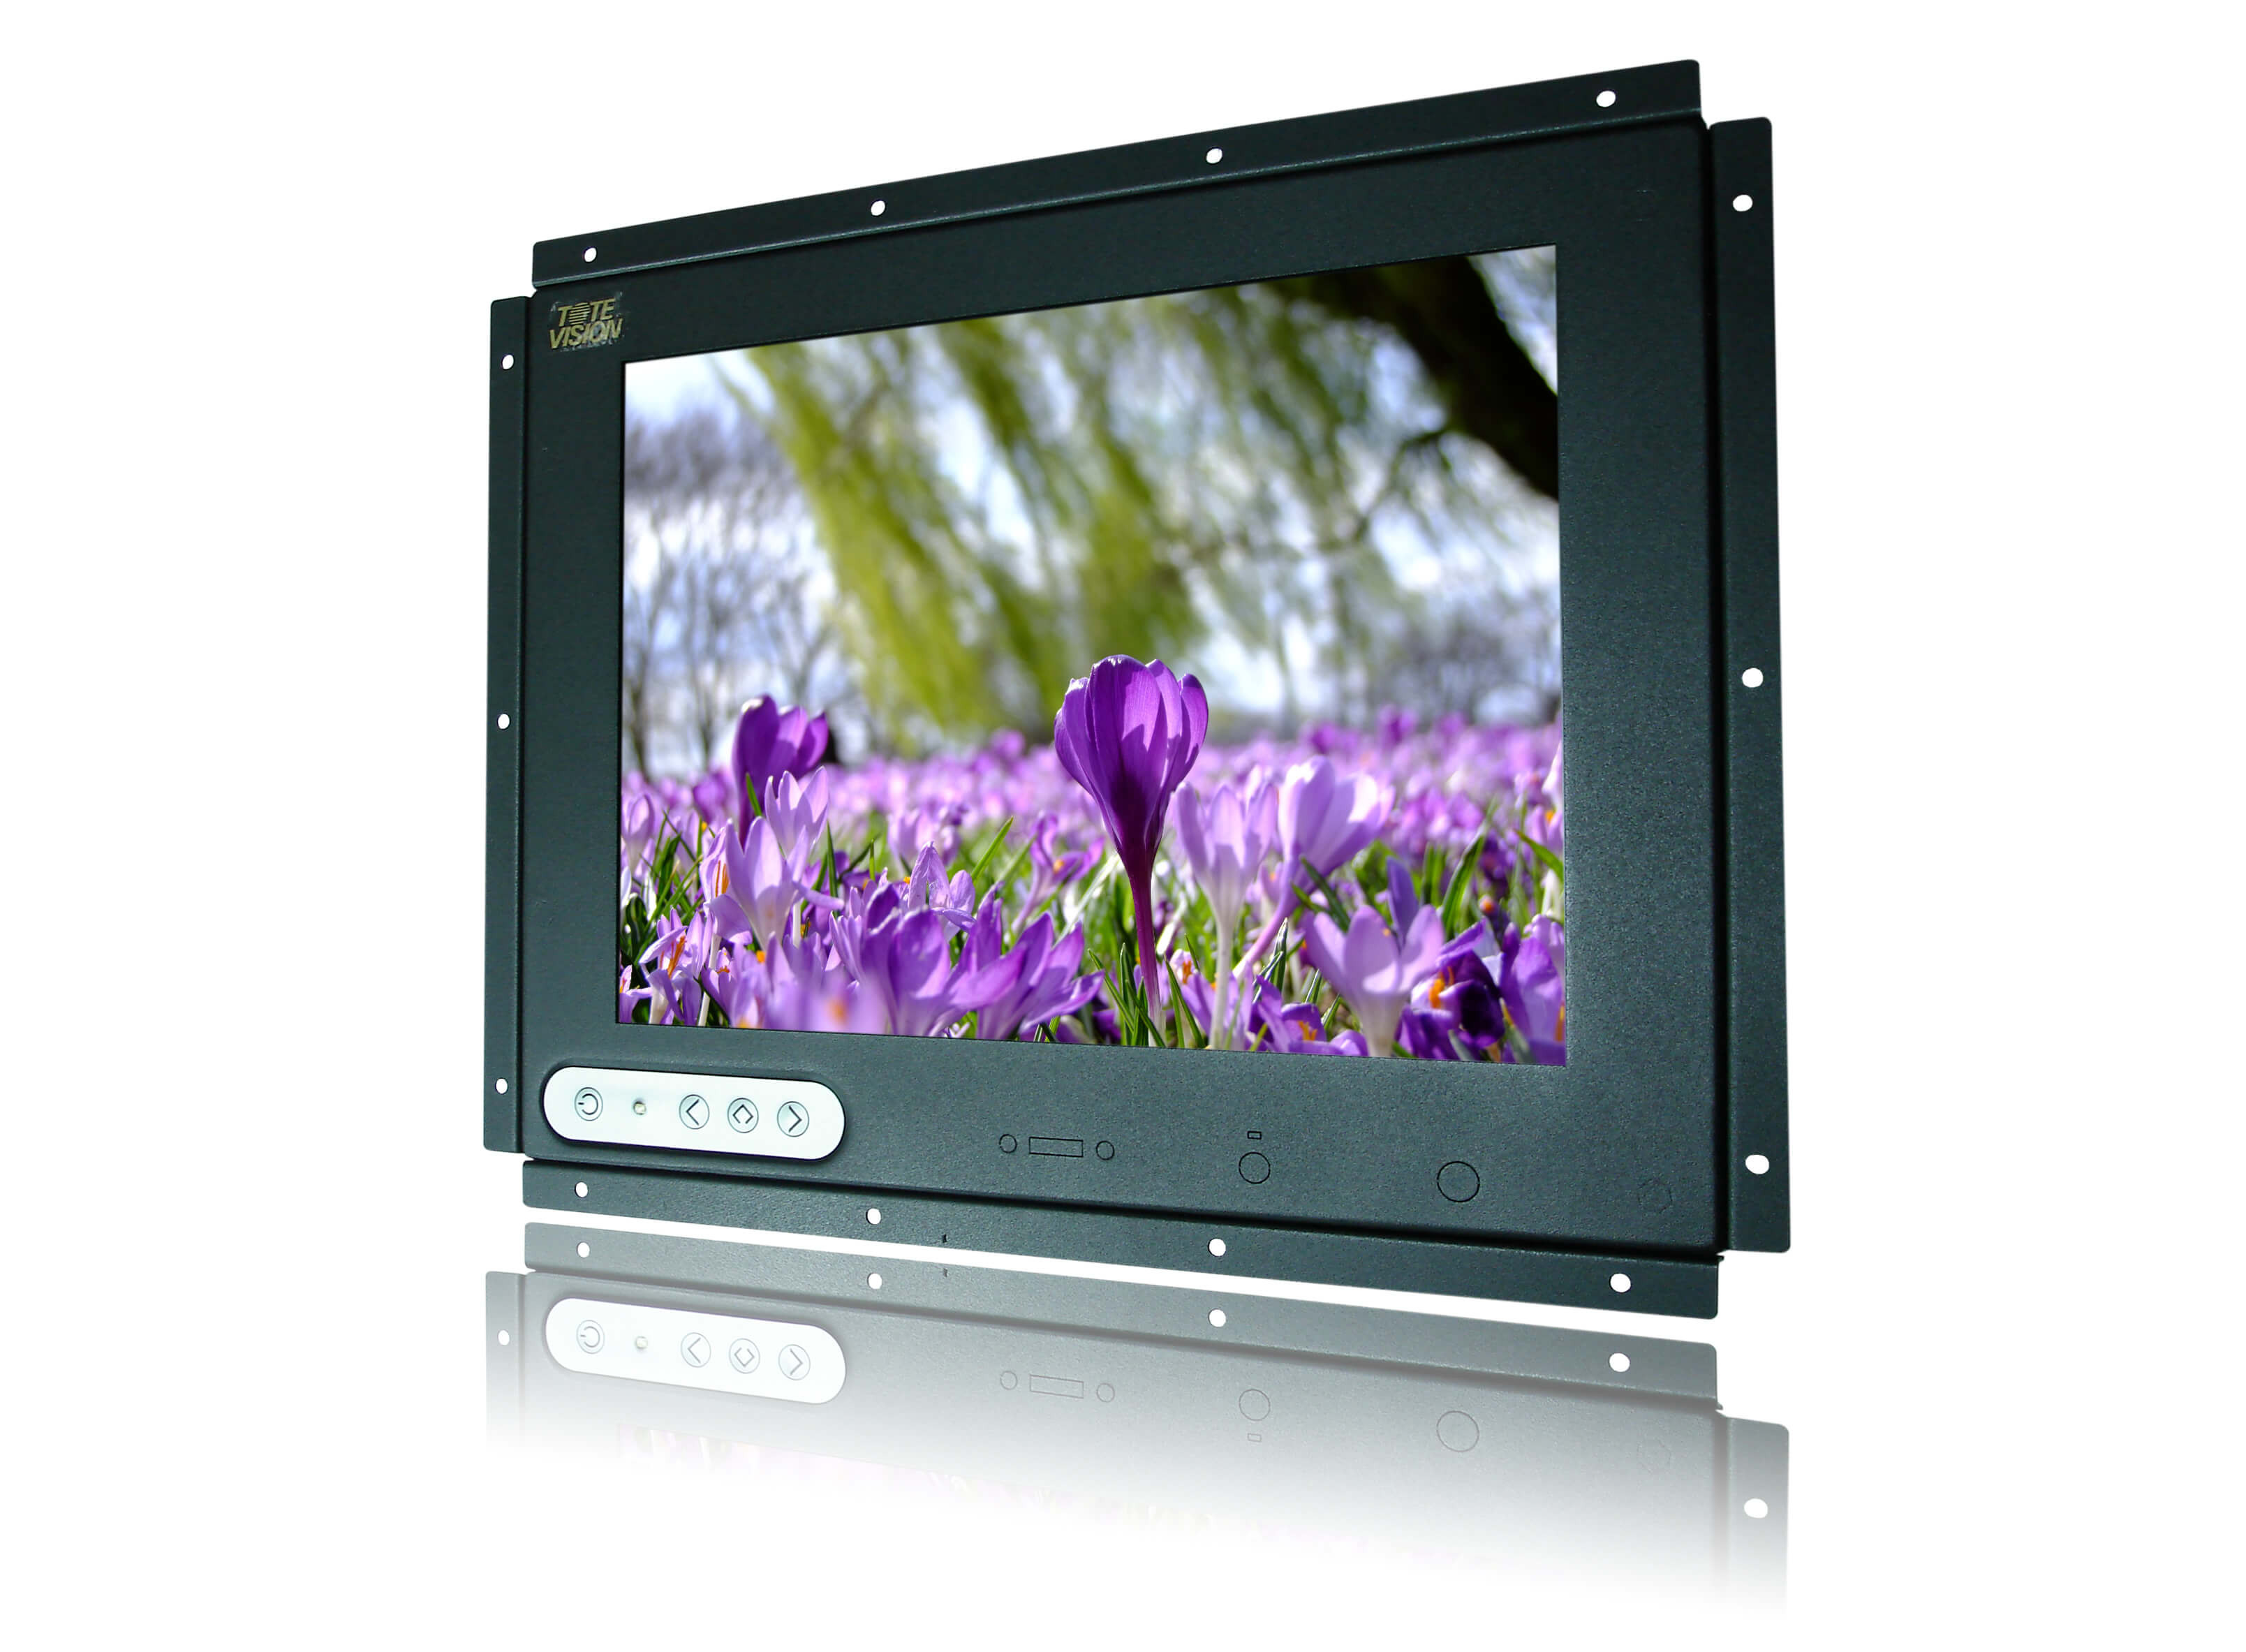 DLH1236-E - LCD-TFT display from Litemax Co. (12.1 inches, 1024x768, no controller, capacitive touch screen, LED inverter, an AD Board)